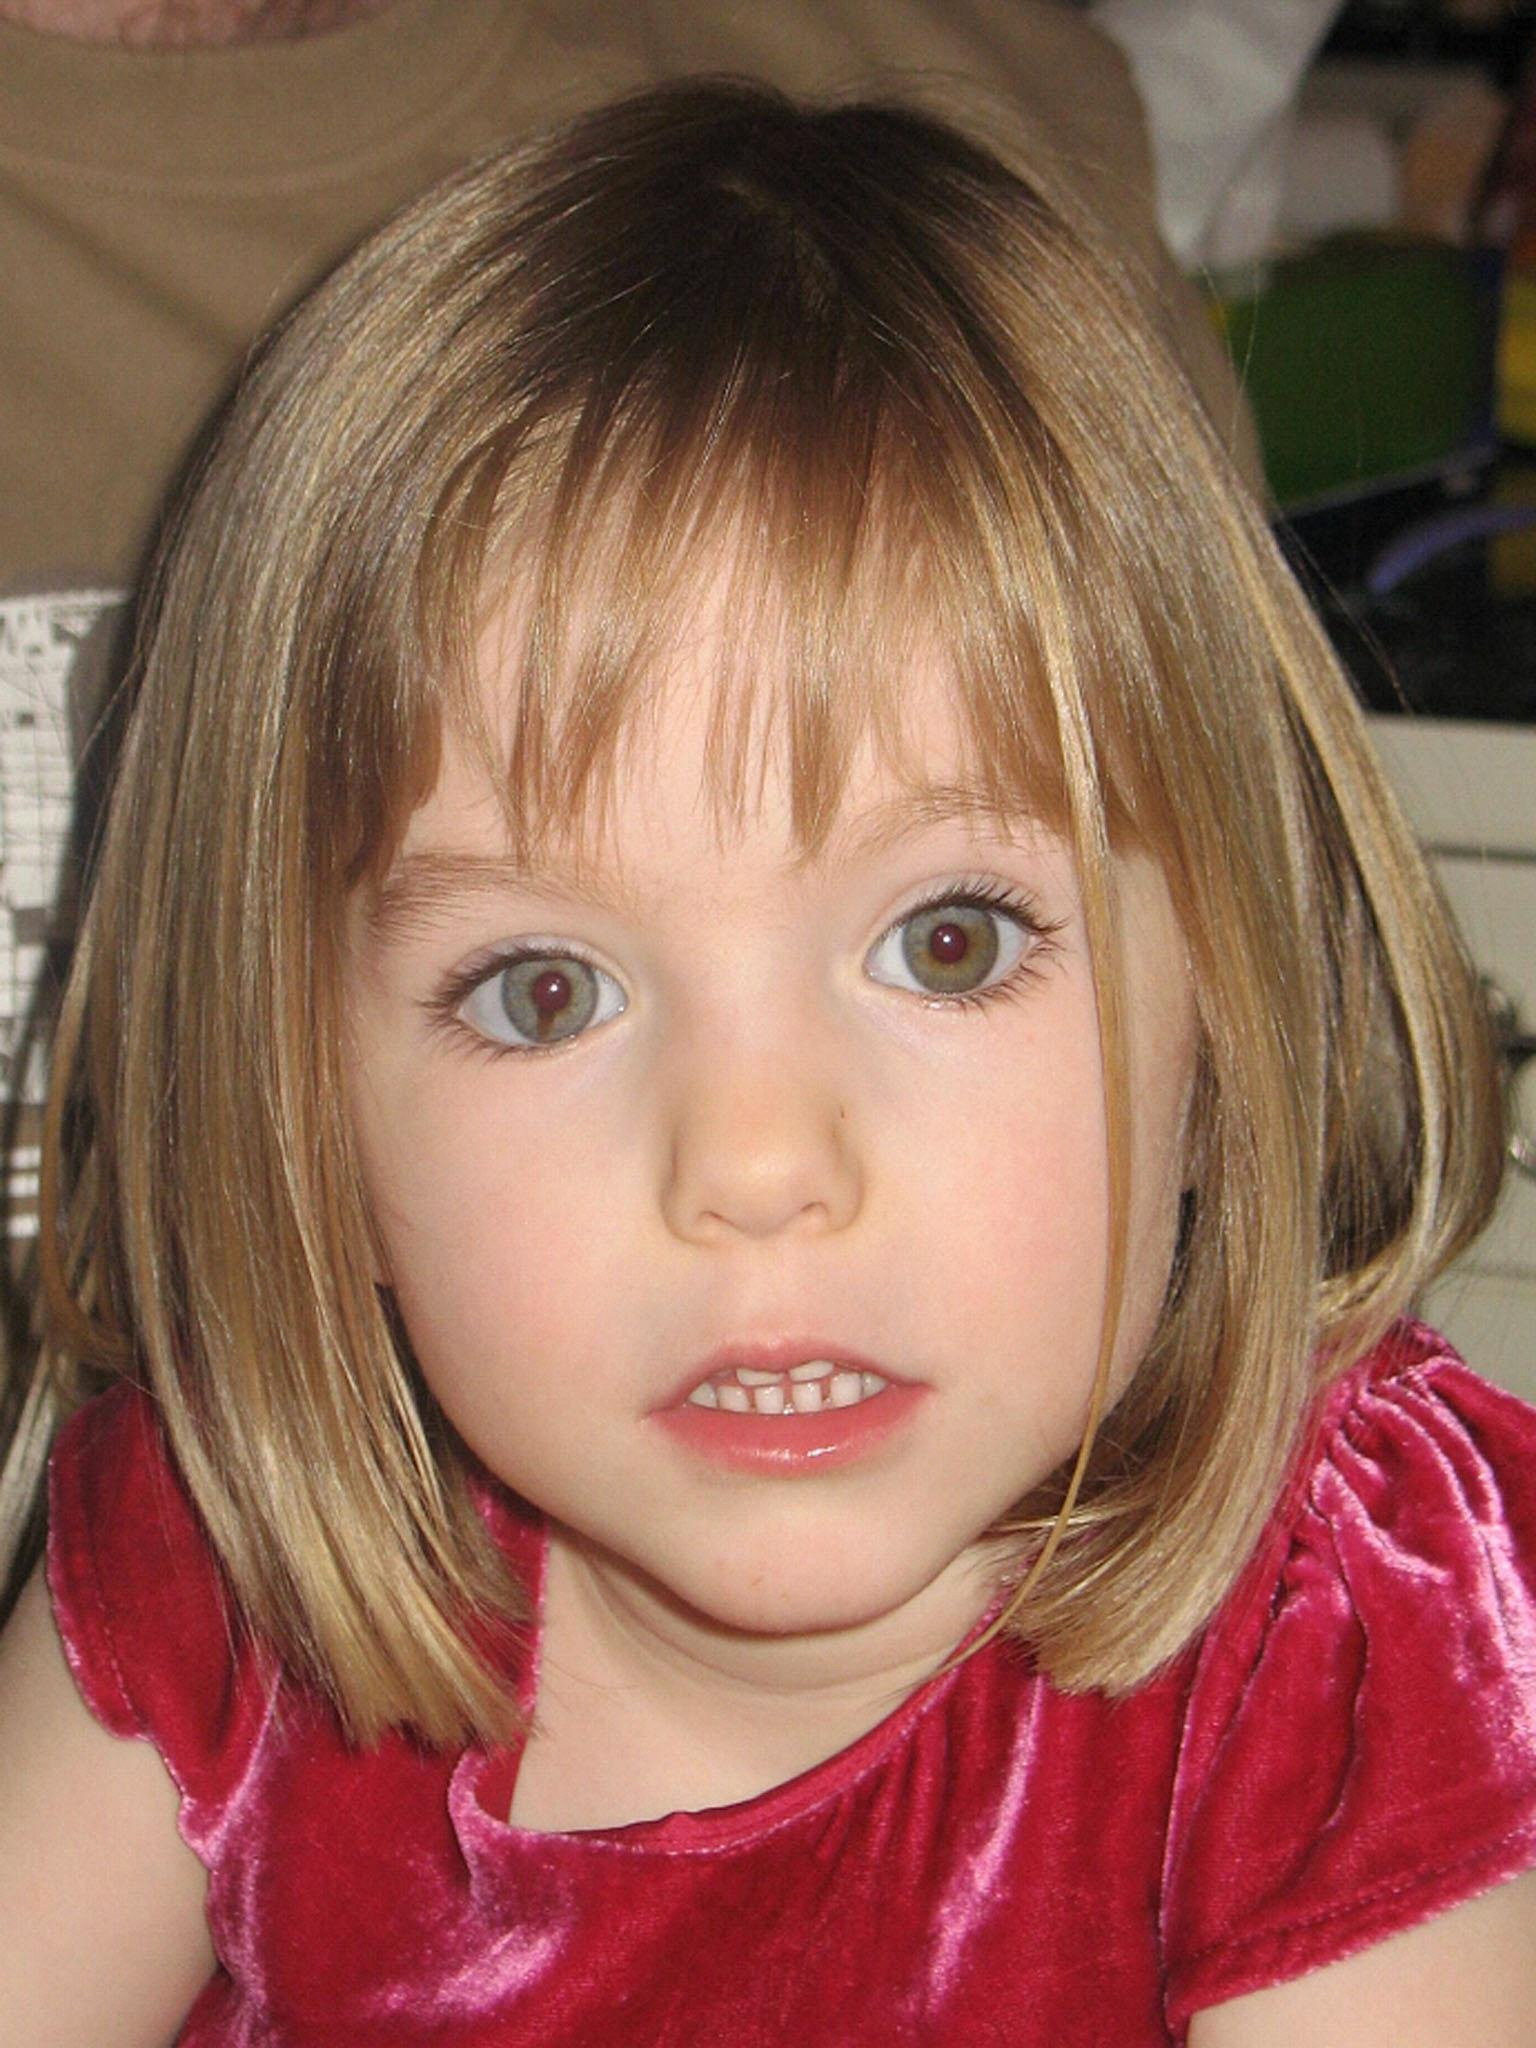 Undated family handout file photo of Madeleine McCann, as detectives investigating the disappearance of the child will be given more funding for the search. PRESS ASSOCIATION Photo. Issue date: Tuesday March 27, 2018. The Home Office has confirmed that the application from the Metropolitan Police for more money to fund Operation Grange - the investigation into the disappearance of Madeleine - will be granted. See PA story POLICE Portugal. Photo credit should read: PA/PA Wire NOTE TO EDITORS: This handout photo may only be used in for editorial reporting purposes for the contemporaneous illustration of events, things or the people in the image or facts mentioned in the caption. Reuse of the picture may require further permission from the copyright holder.